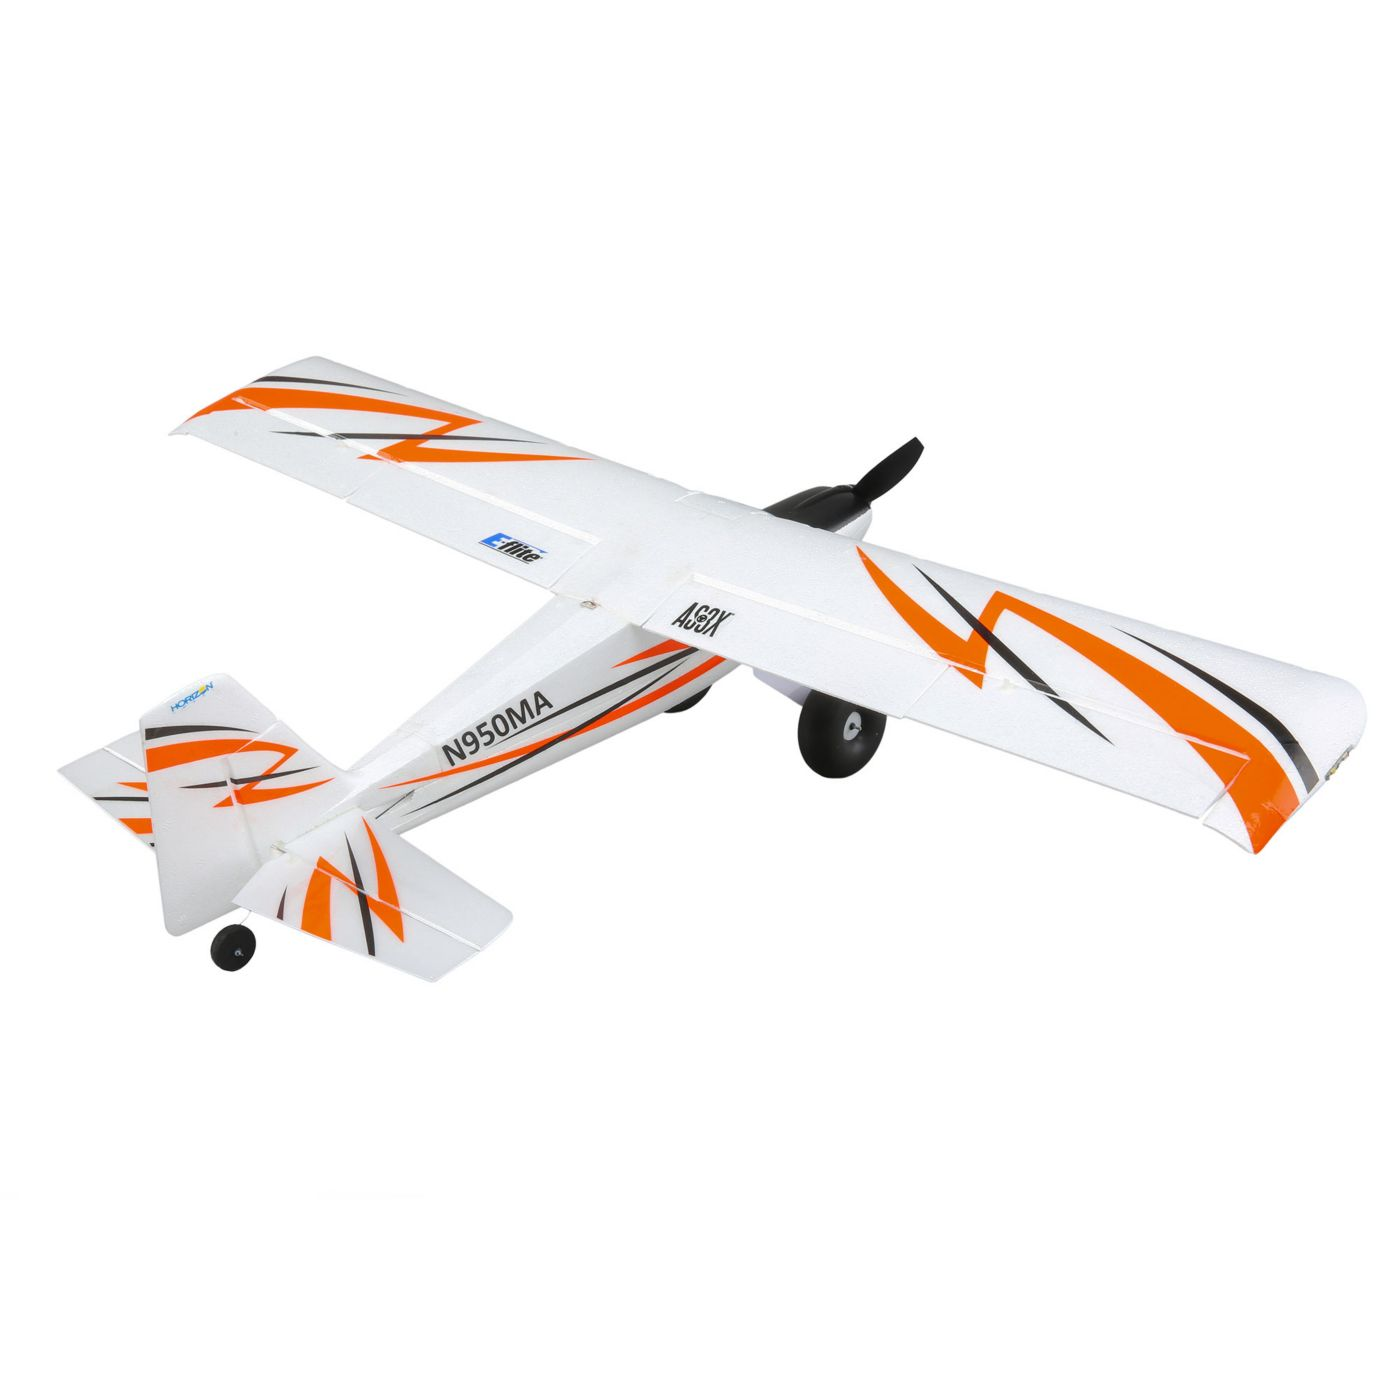 e flite umx timber bnf basic ultra micro sport rc airplane